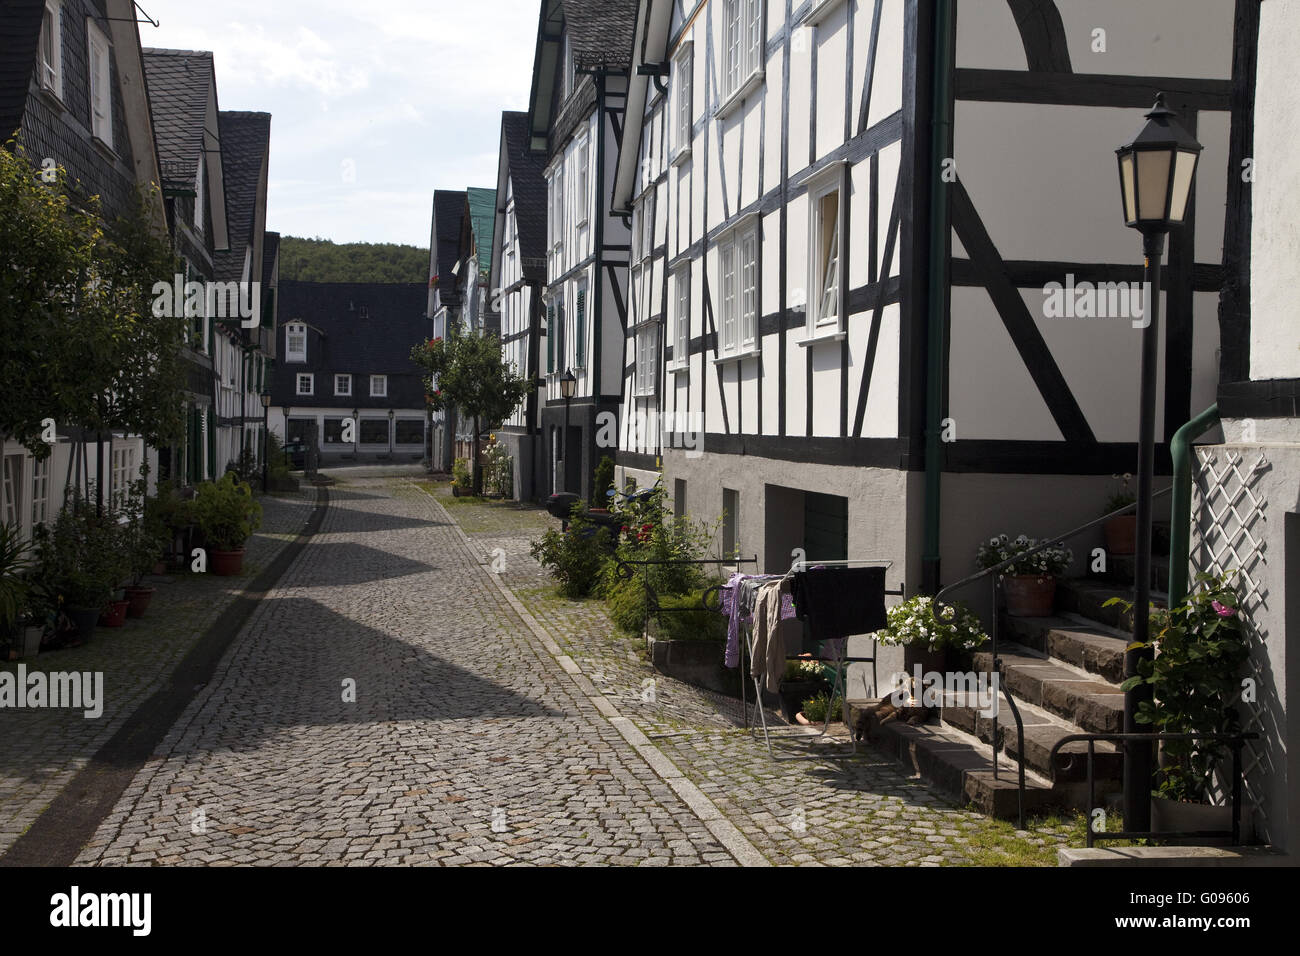 Old town with half-timbered houses in Freudenberg. - Stock Image